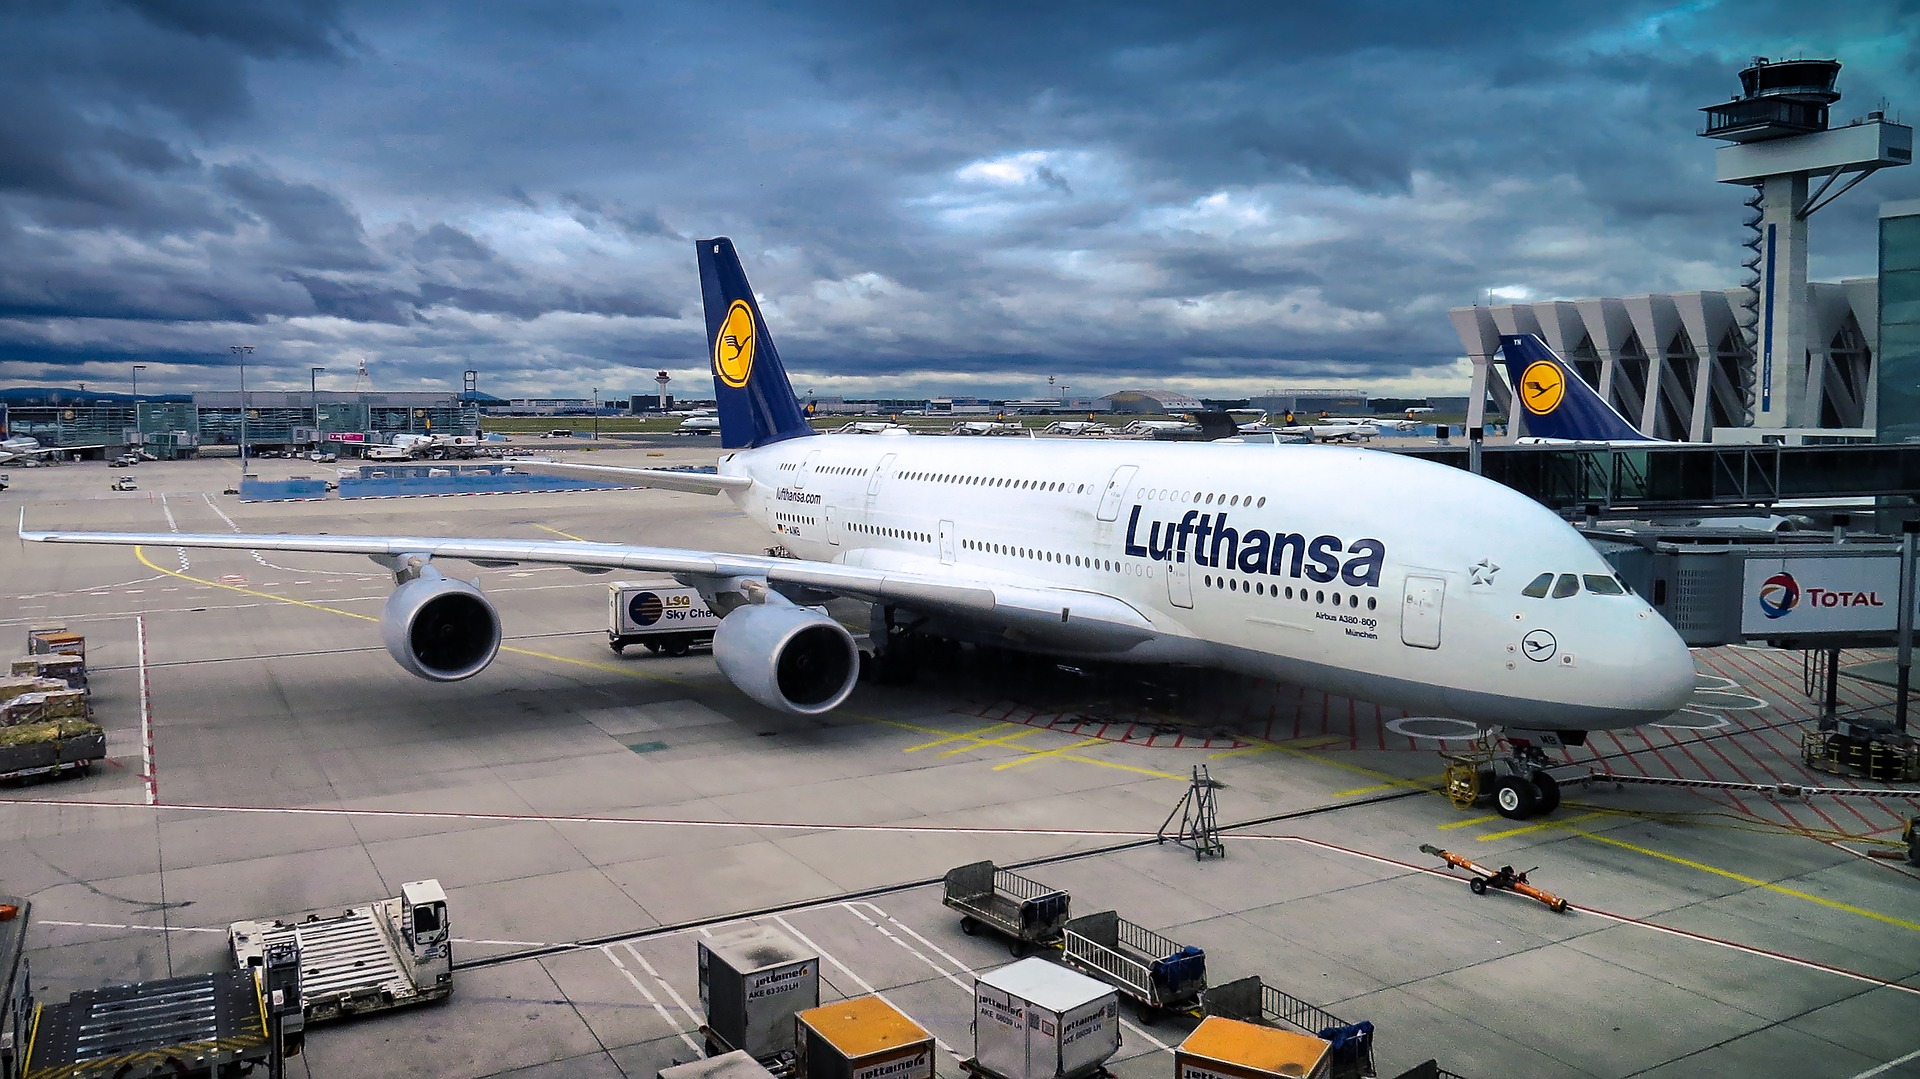 Airbus A380 aeroplane at Frankfurt Airport, Germany